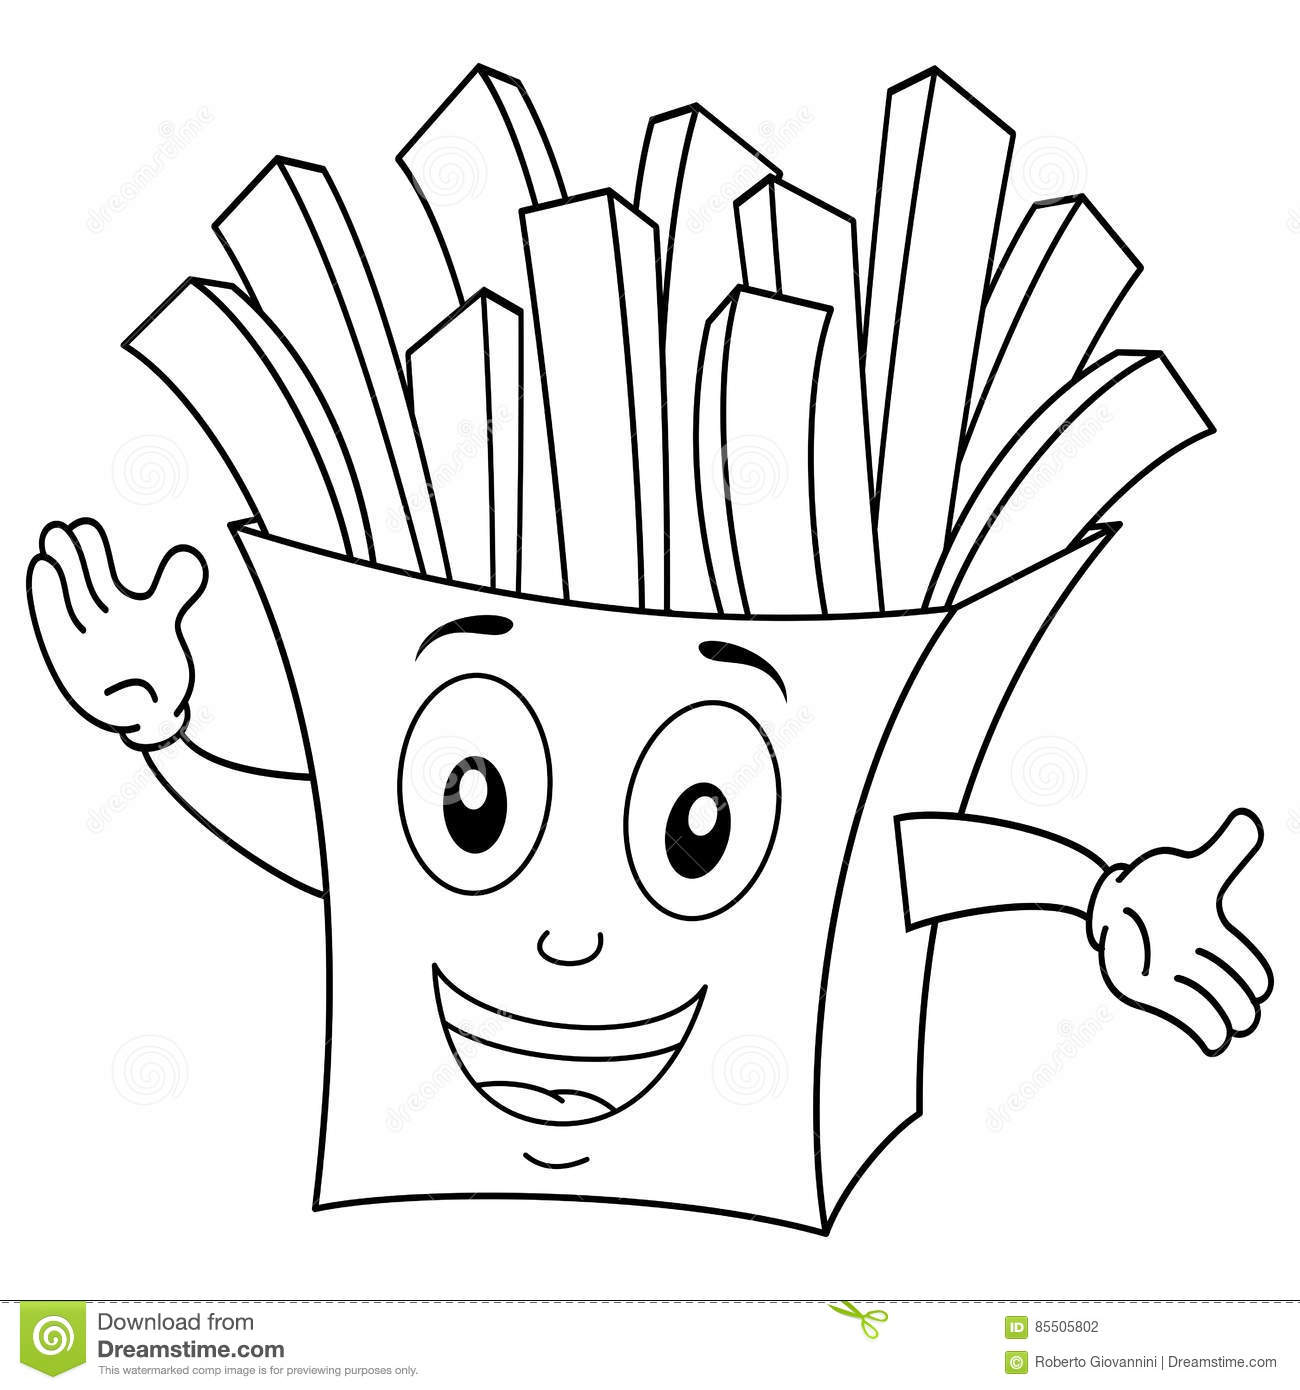 potato chip coloring page - coloring cute paper bag with french fries stock vector